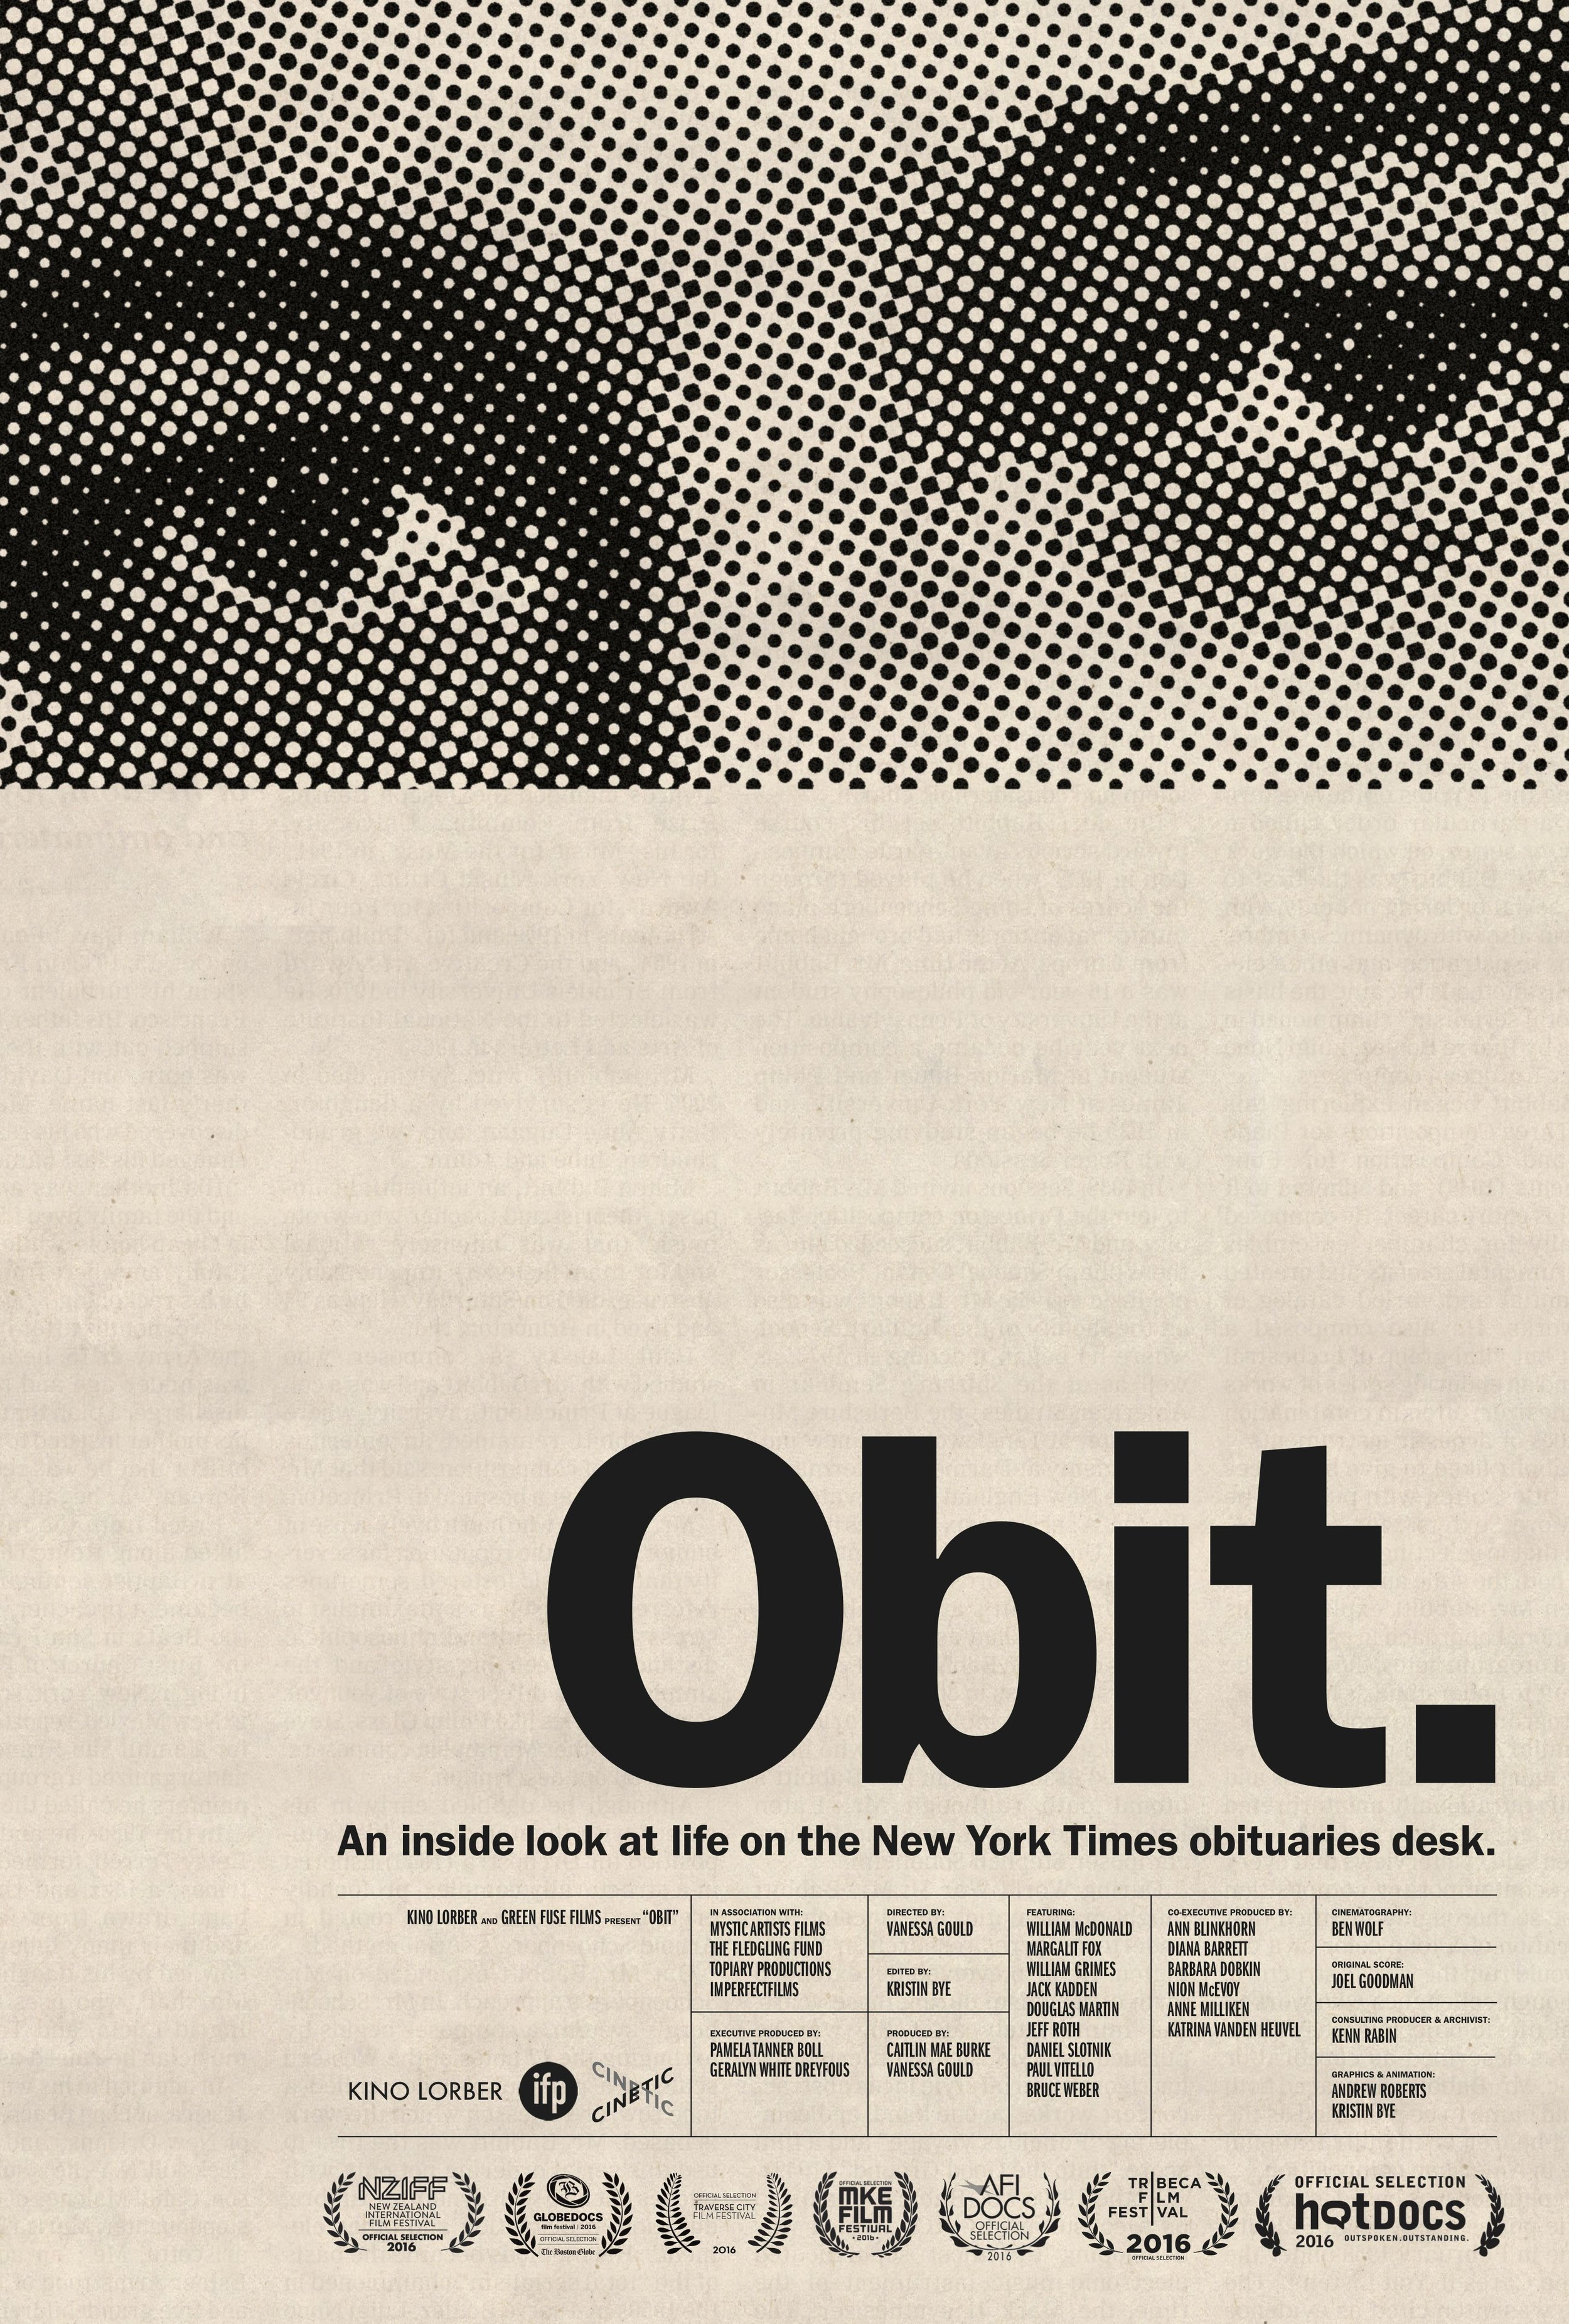 2016.11.03 Obit Poster_lower res.jpg